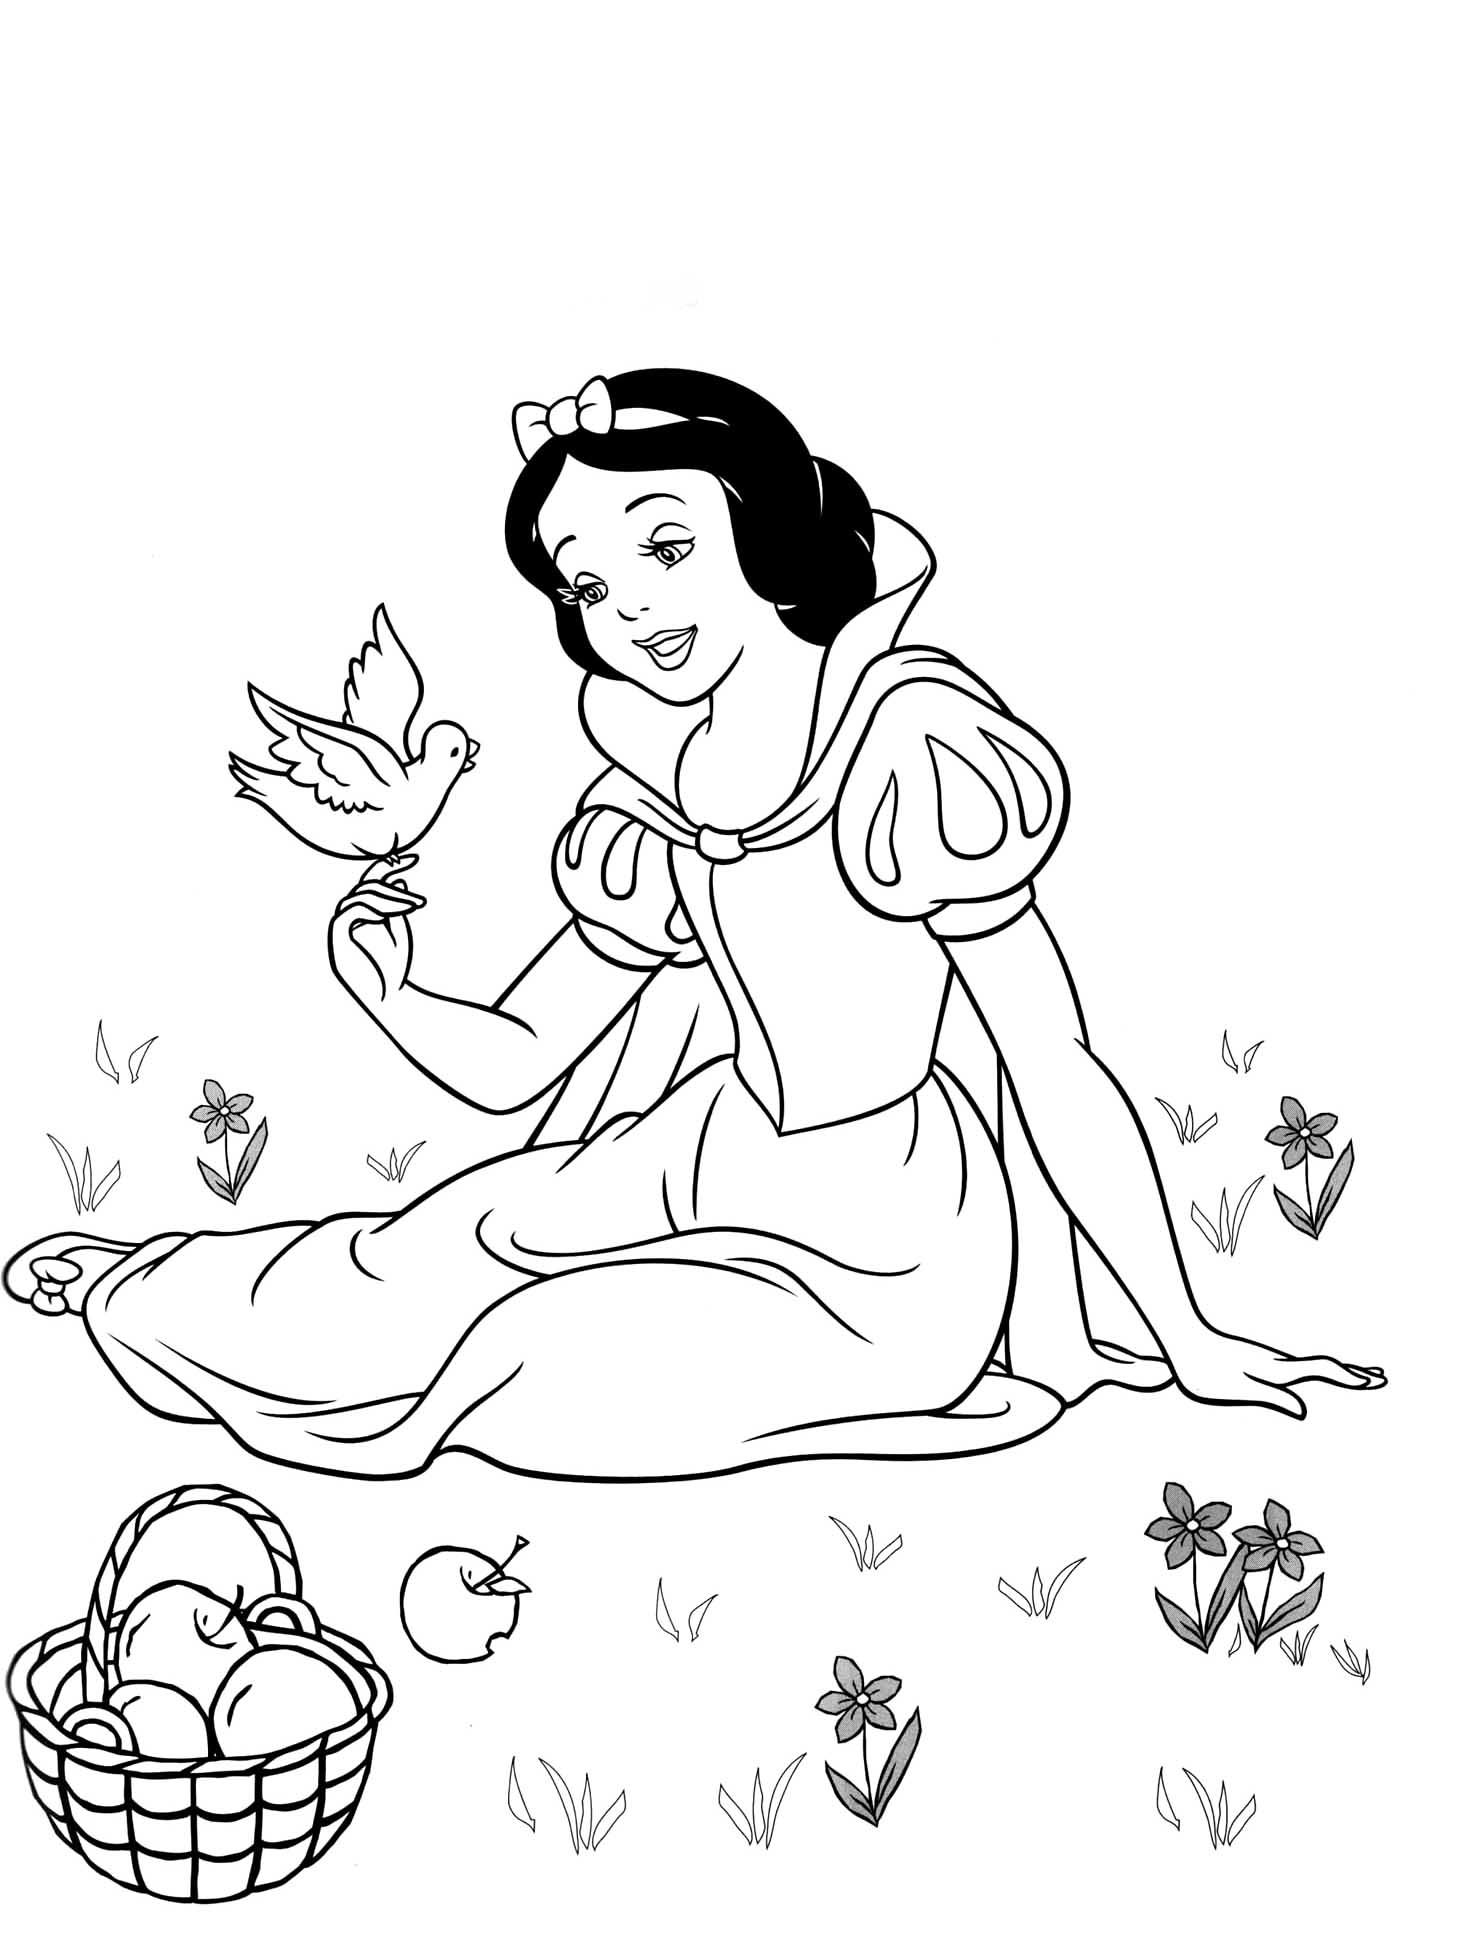 snowwhite coloring snow white coloring pages to download and print for free coloring snowwhite